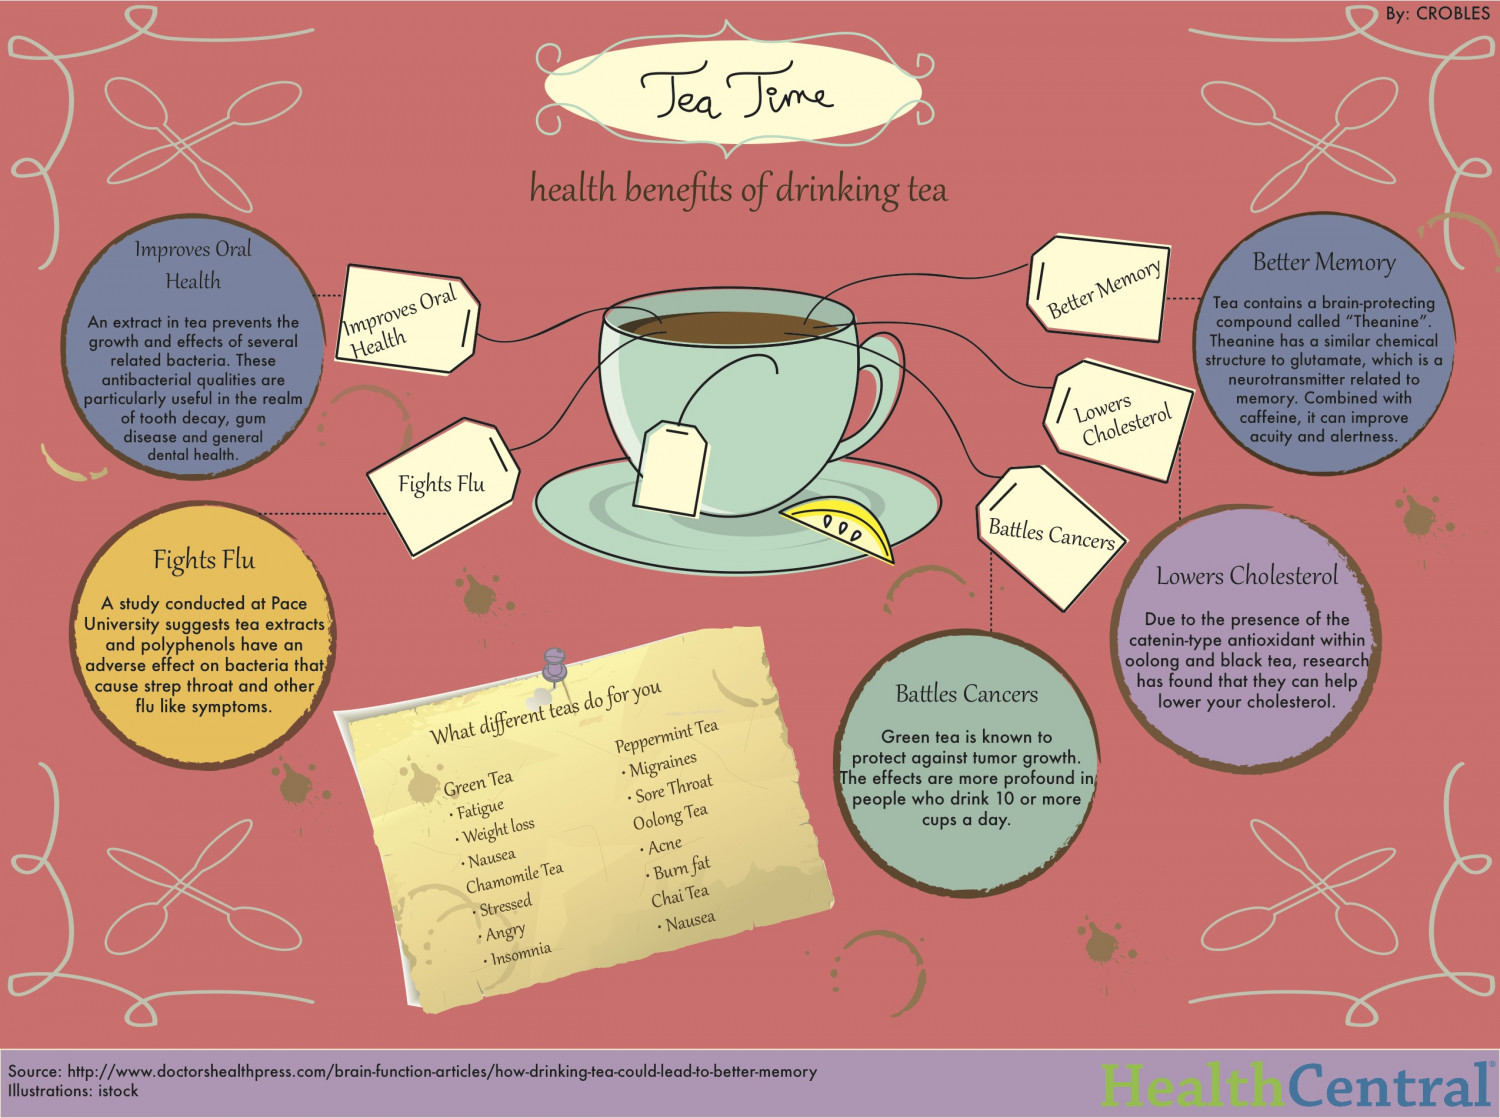 Health Benefits of Drinking Tea Infographic